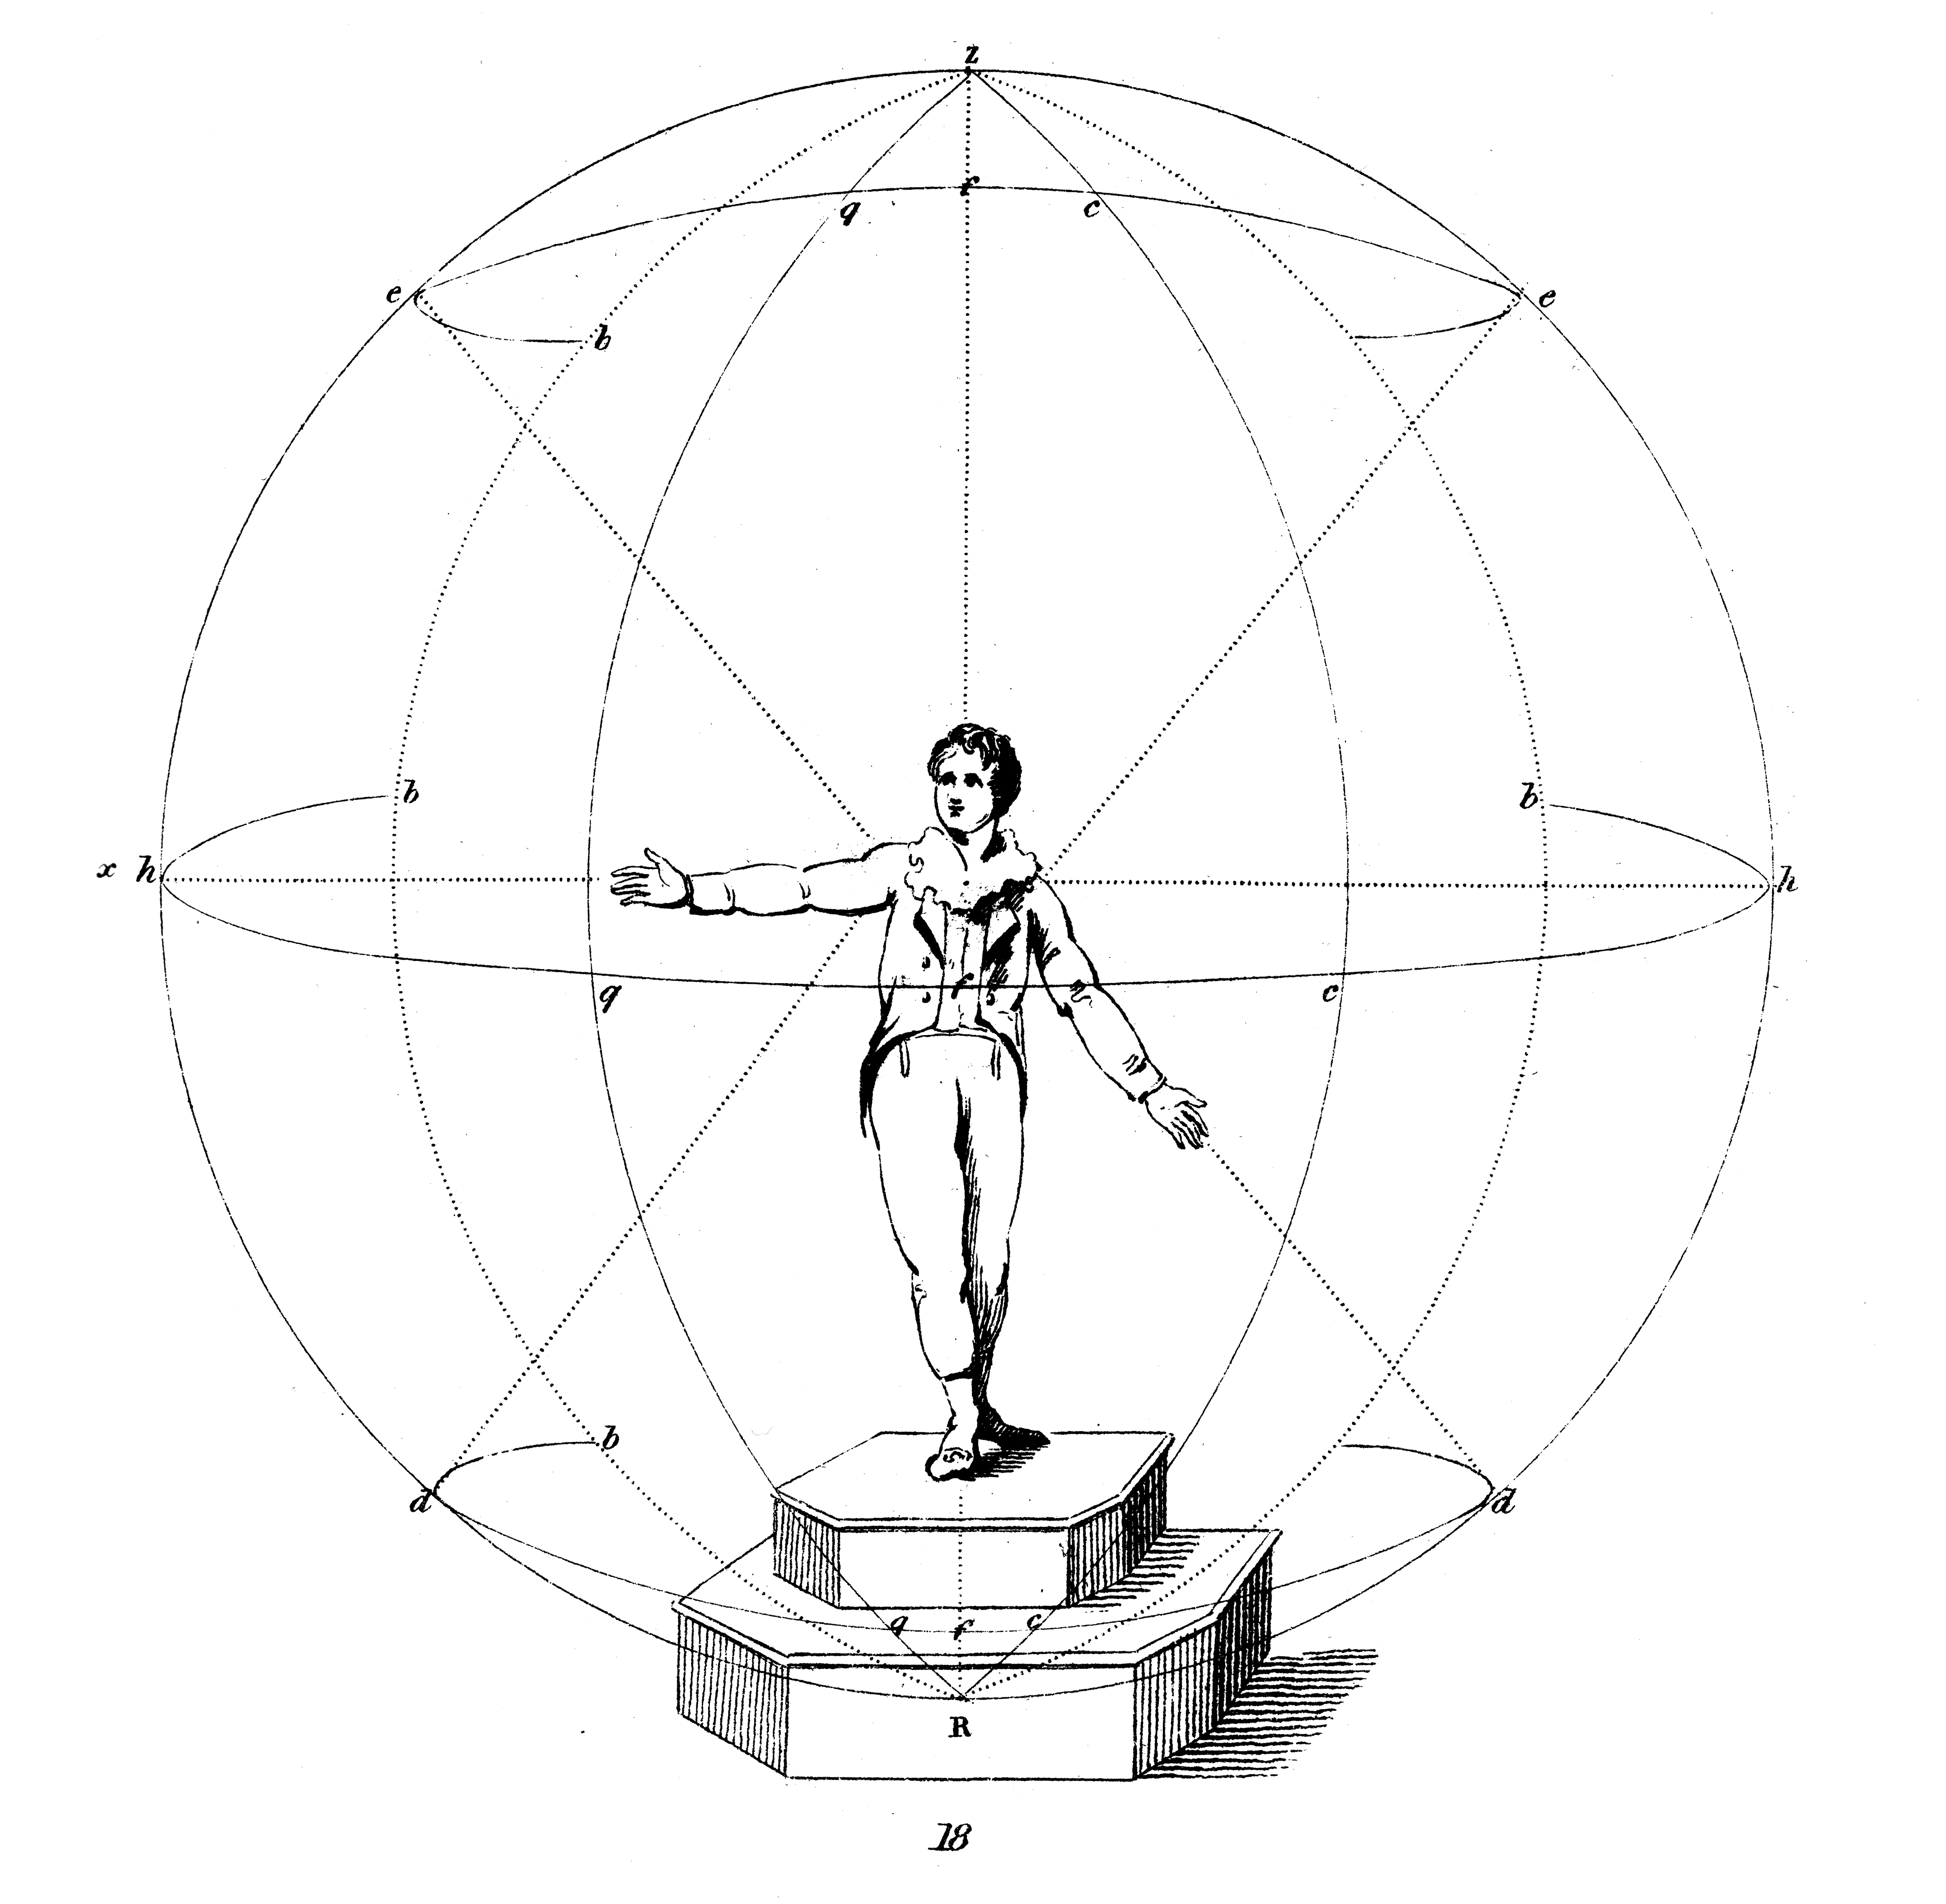 <b>Chironomia sphere</b>     	</br>Gilbert Austin&#39;s interpretation of rhetorical gestures, placed inside a large sphere with the center at the chest and diameter at the shoulders.</br><br/><b>Source: </b><i>Gilbert Austin, Chironomia; or, A Treatise on Rhetorical Delivery (London: W. Bulmer, and co., 1806), 603, http://books.google.com/books?id=L14IAAAAQAAJ&amp;printsec=frontcover#v=onepage&amp;q&amp;f=false</i>